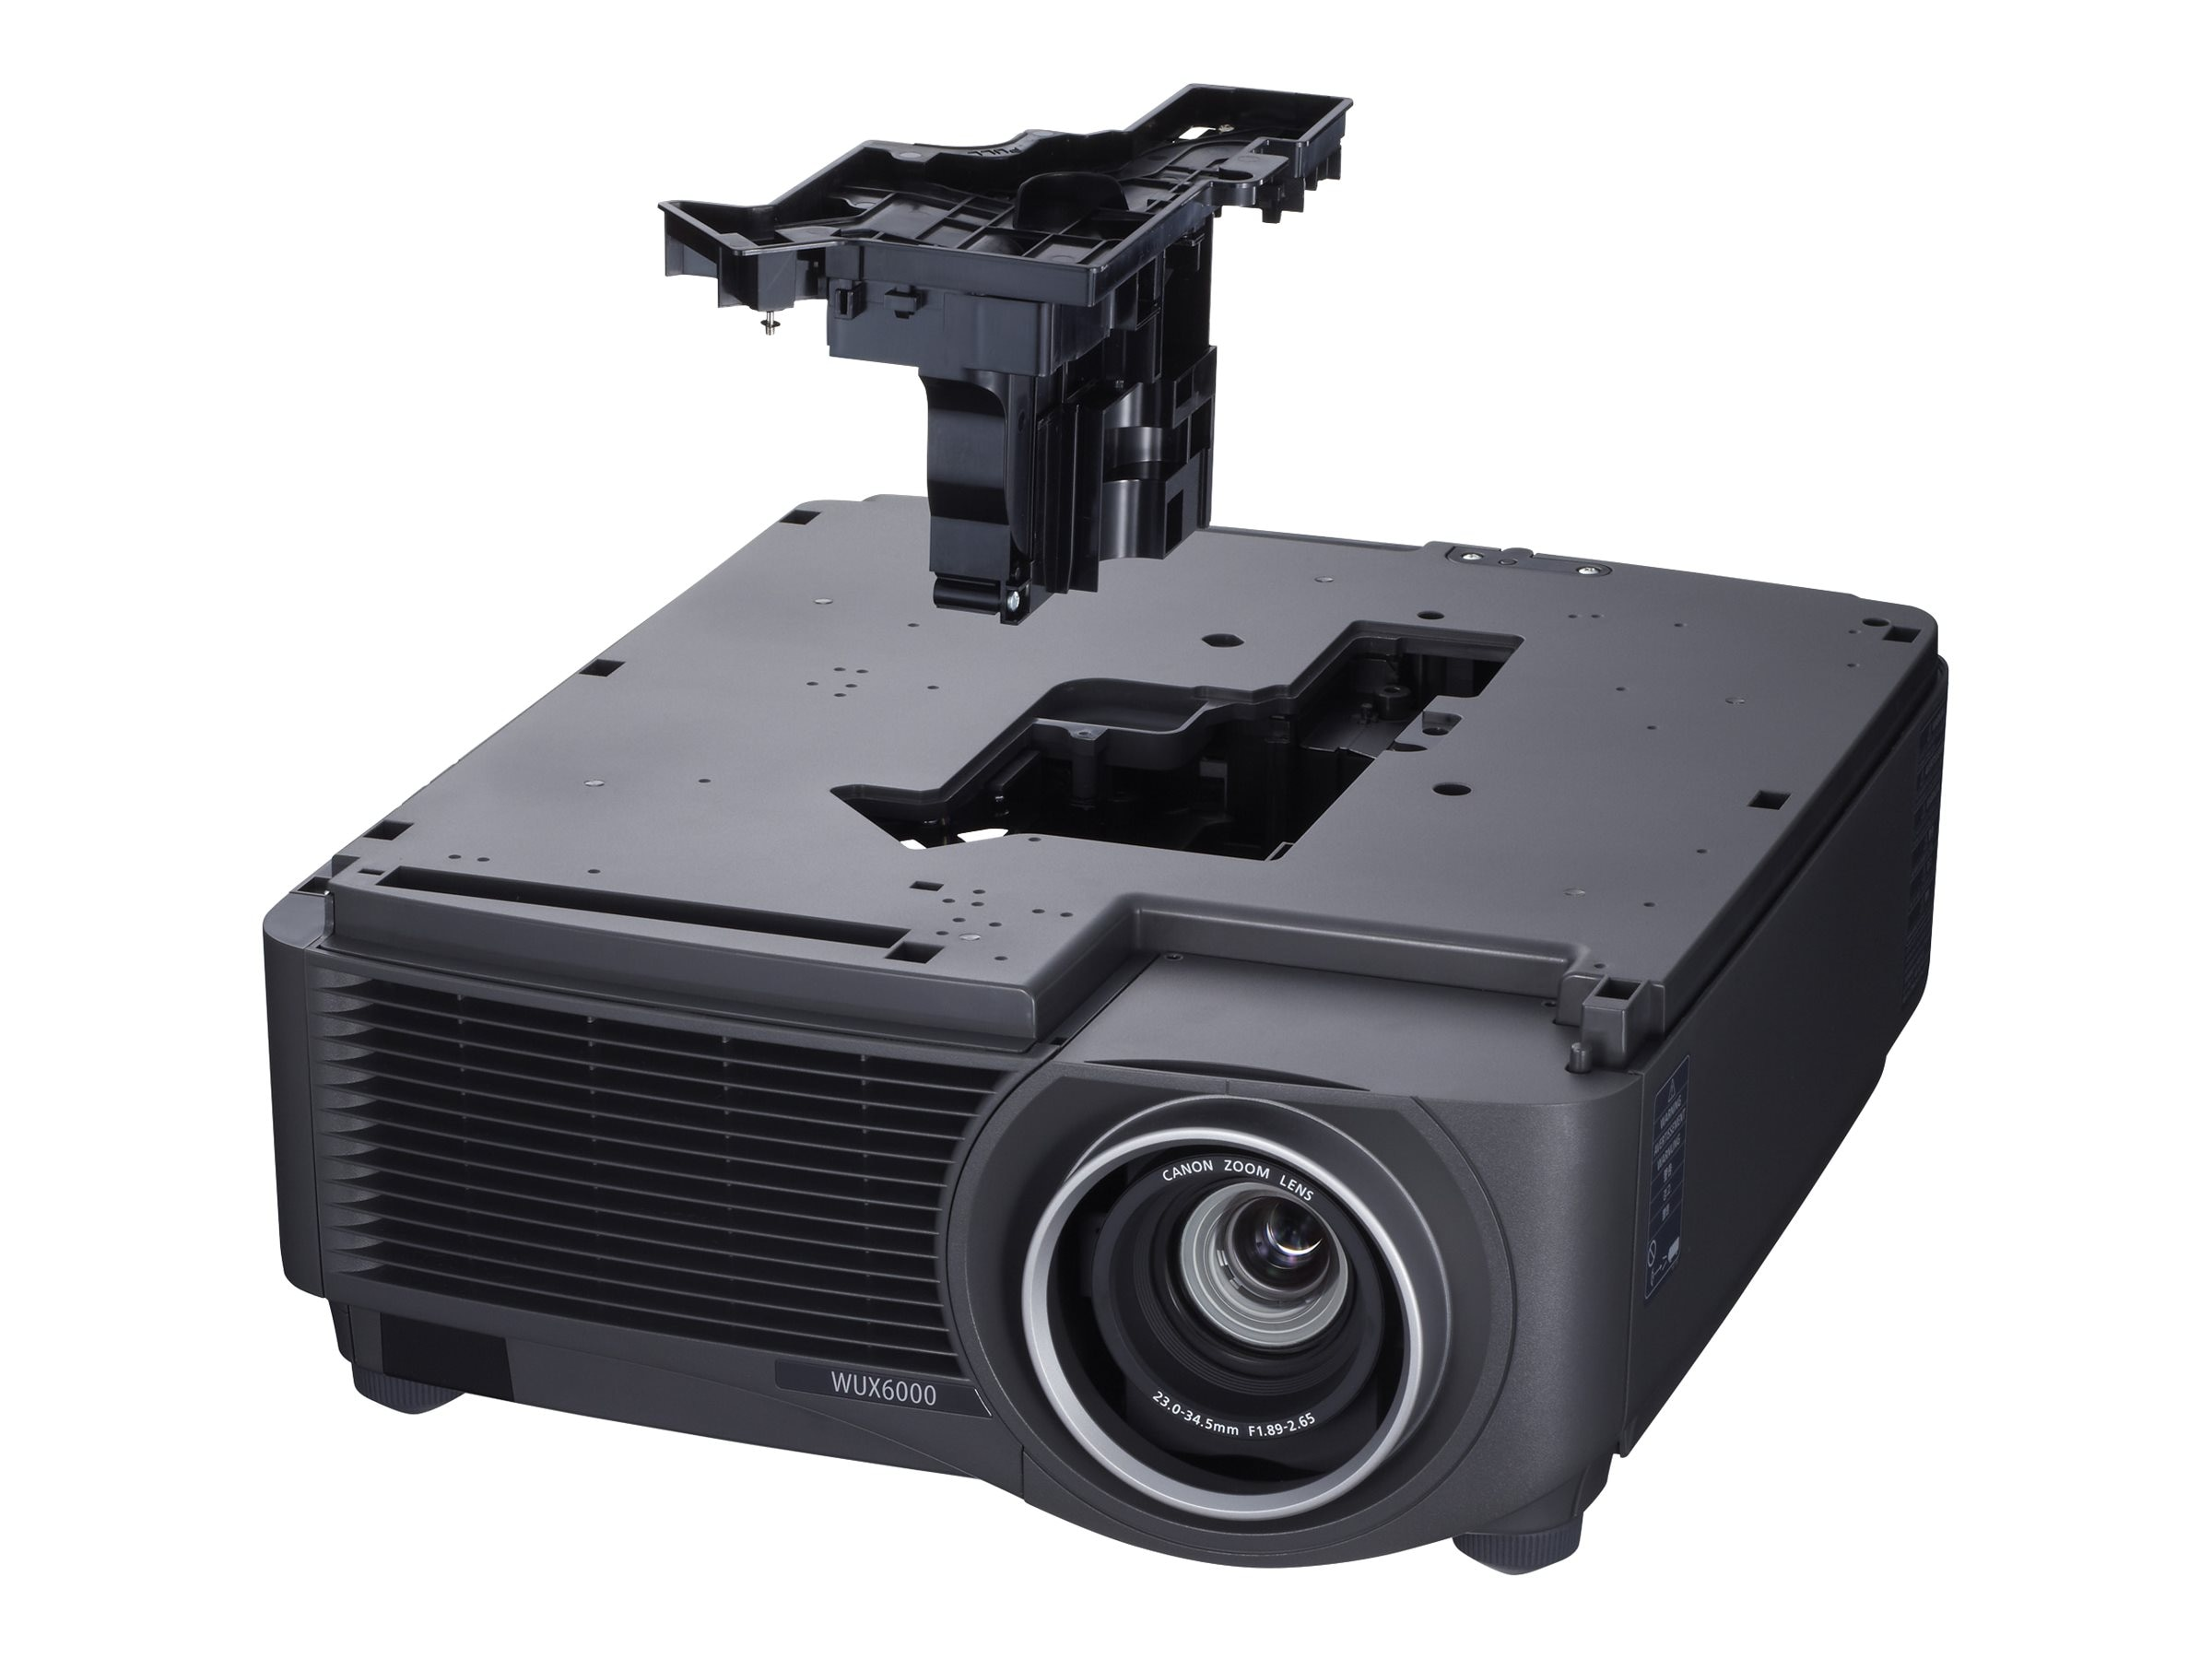 Canon REALiS WUX6000 WUXGA LCoS Projector, 6000 Lumens, White Black, Standard Zoom Lens